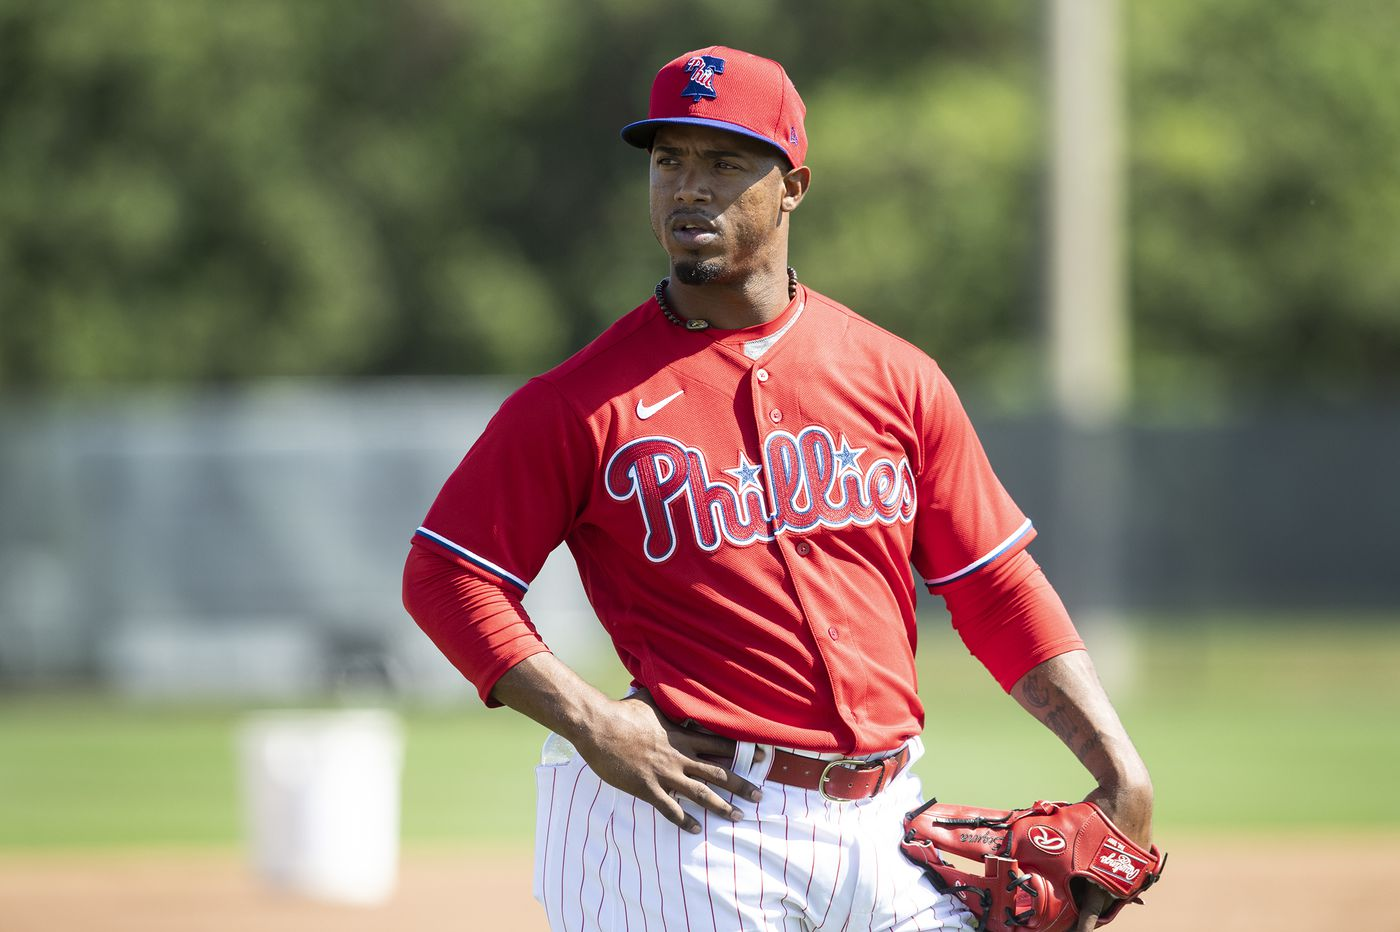 Phillies spring training: Slimmer Jean Segura arrives with new position, conditioning plan